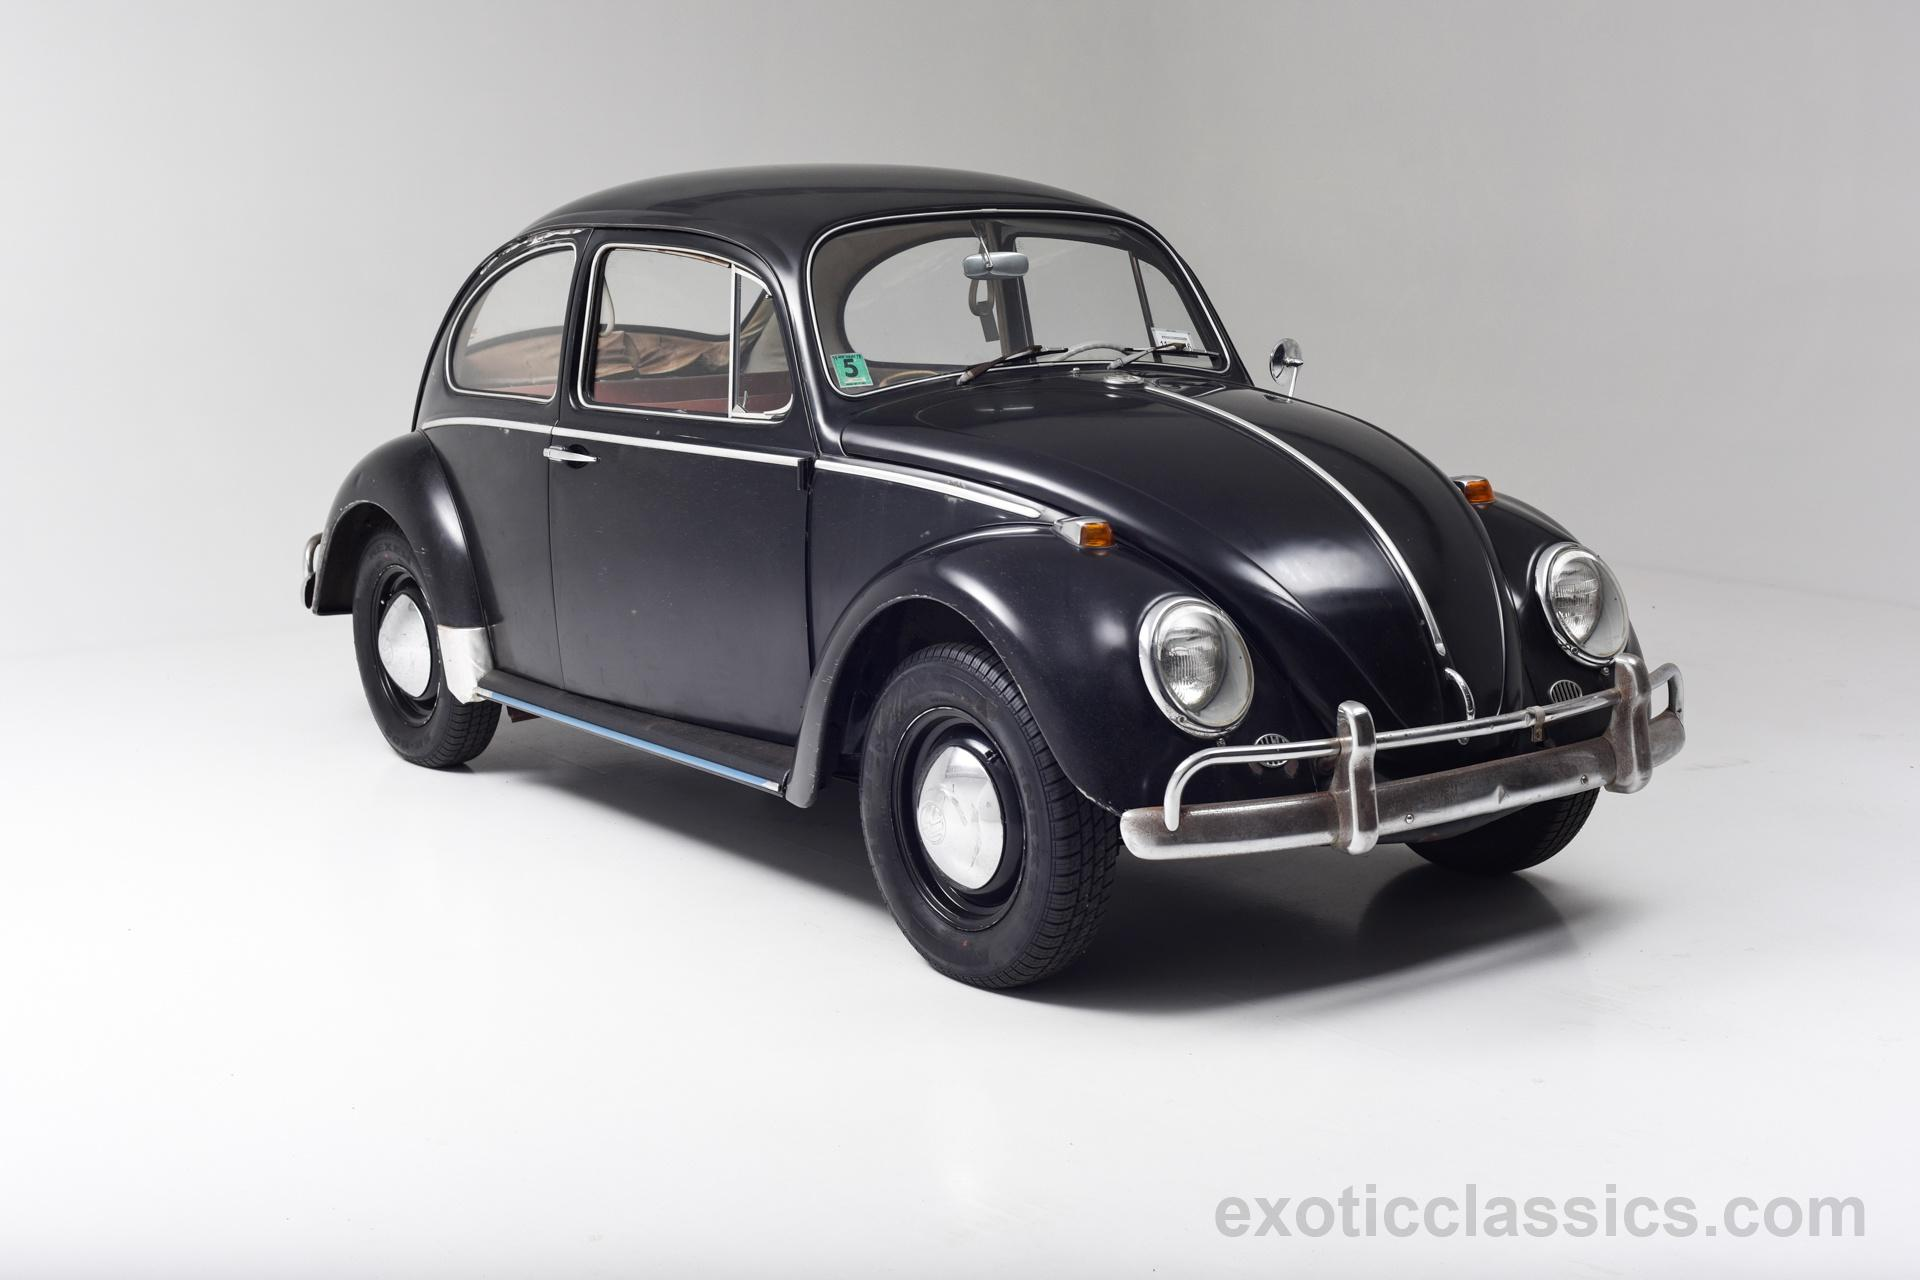 1965 Volkswagen Beetle Exotic Classic Car Dealership New